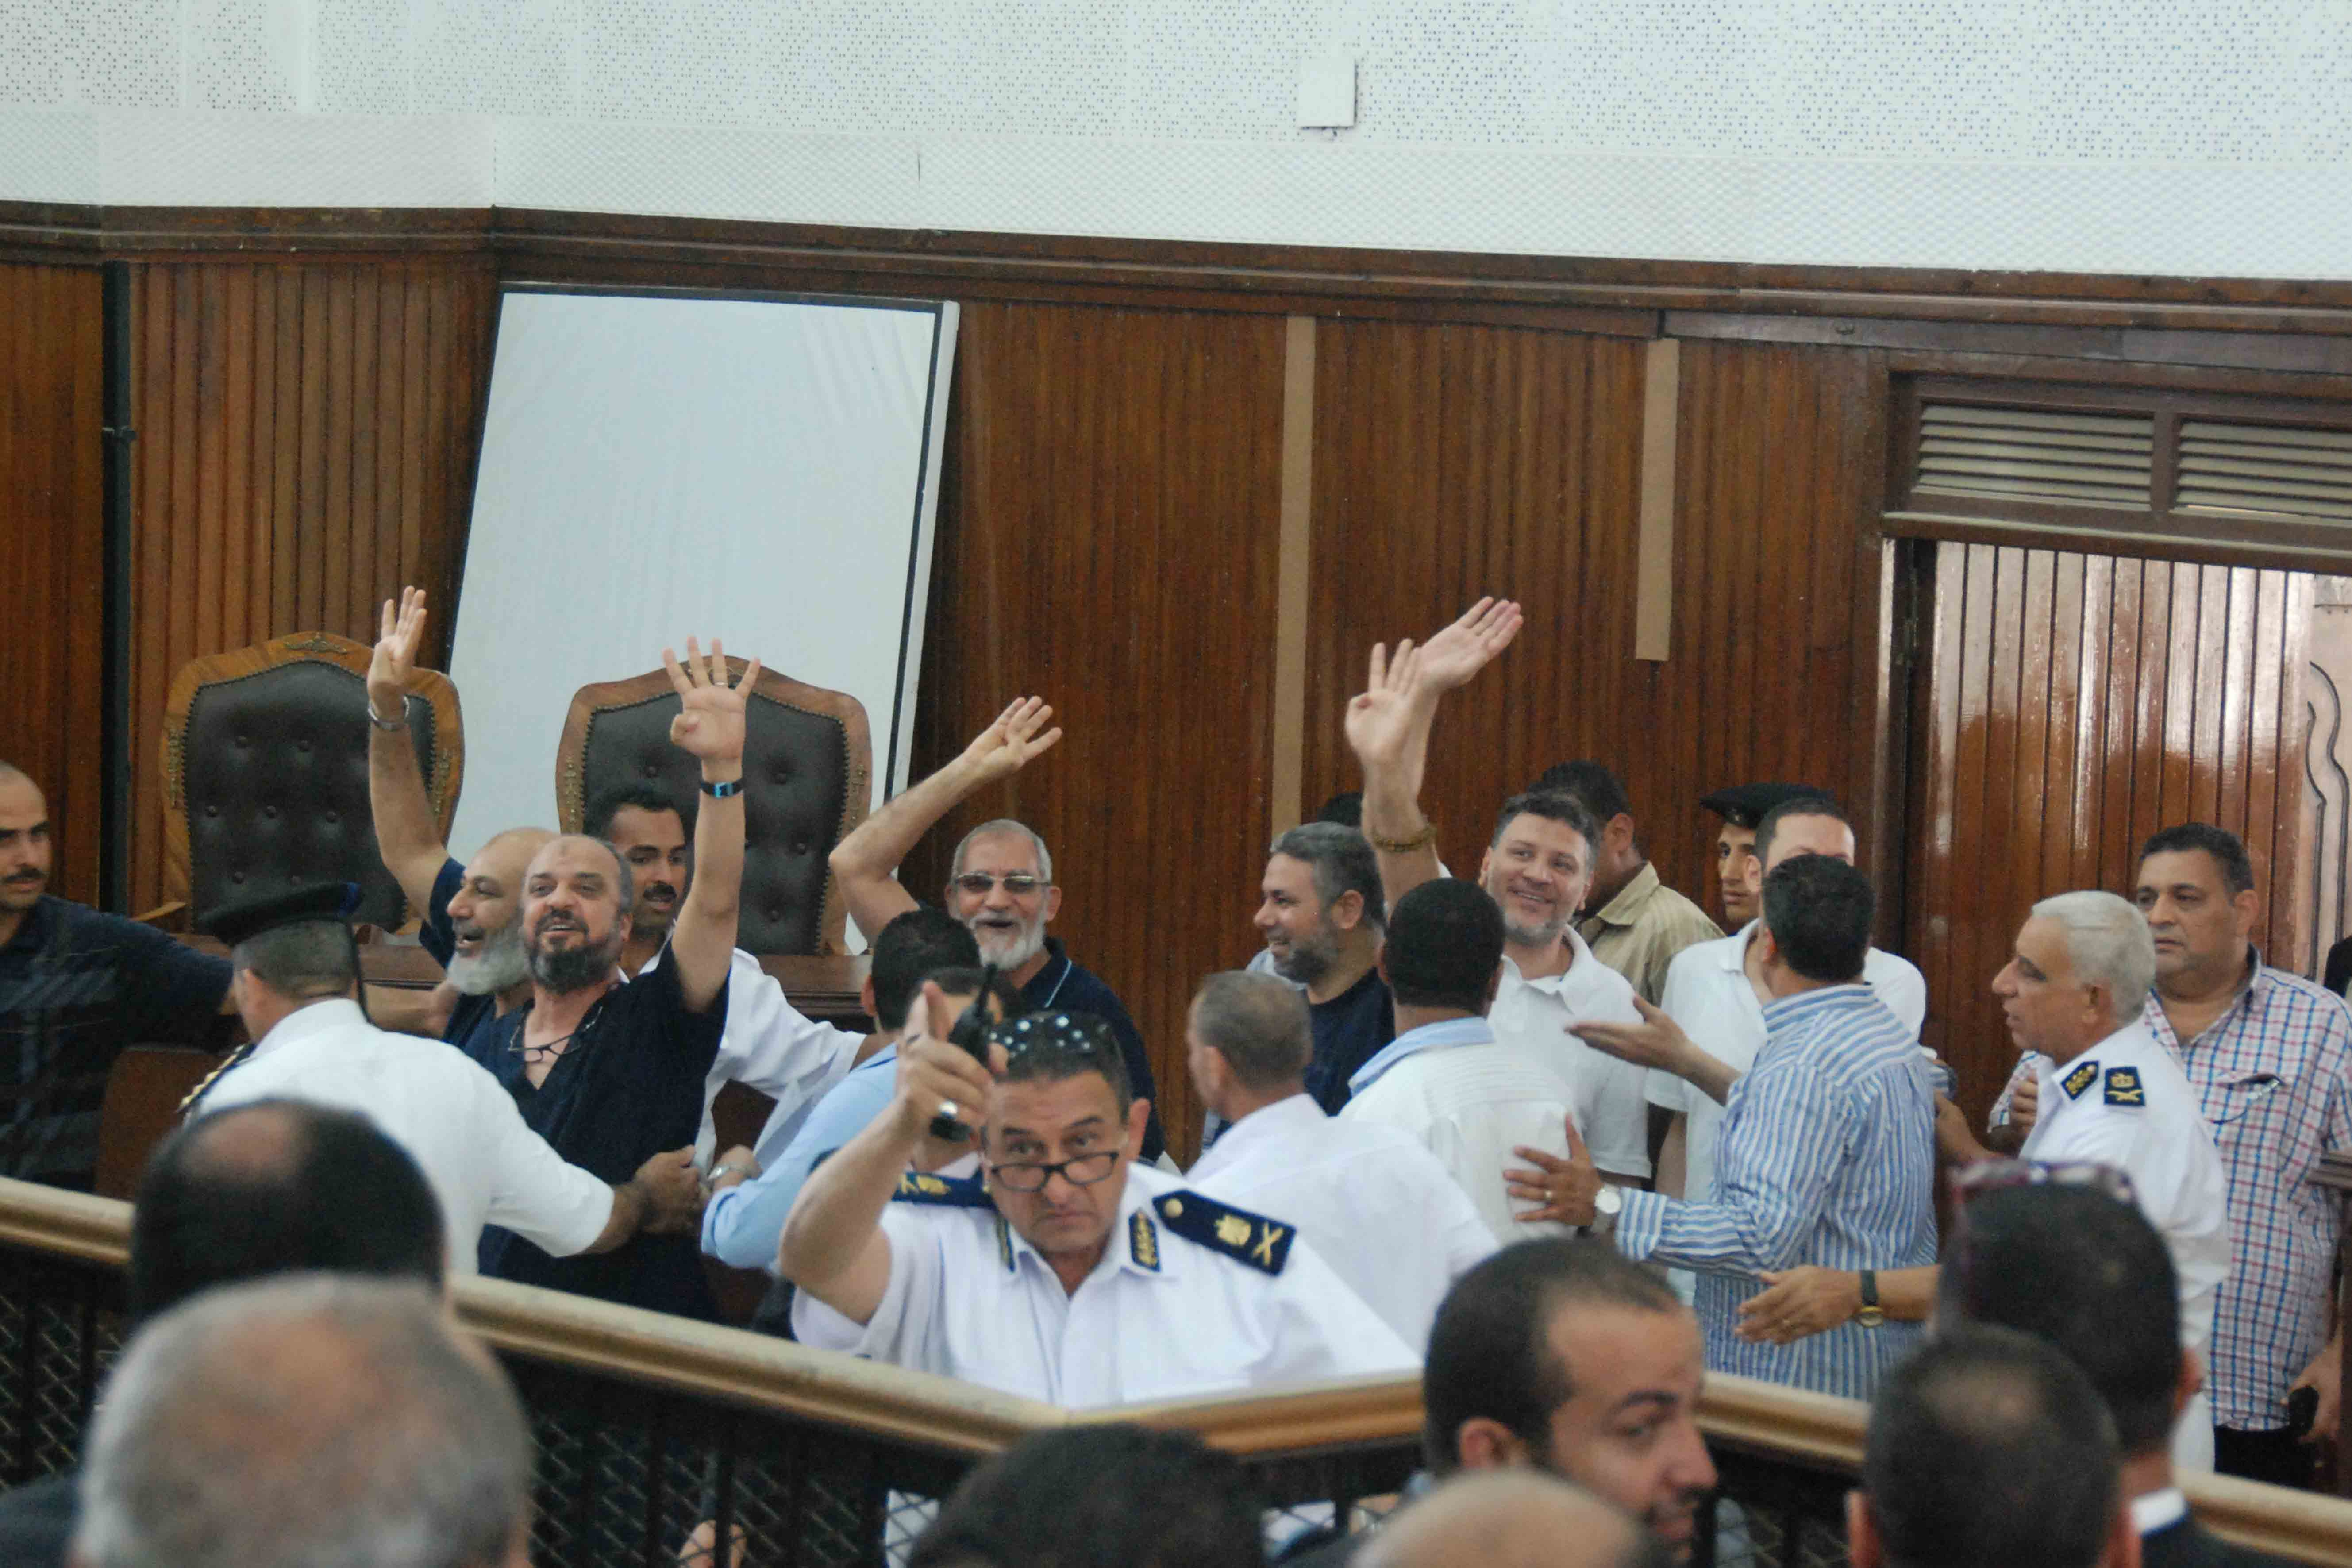 Supreme Guide of the Muslim Brotherhood Mohamed Badie, senior FJP member Mohamed AL-Beltagy, conservative preacher Safwat Hegazy, and other defendants arrive to court on Saturday. (Photo by Ahmed Al-Malky)